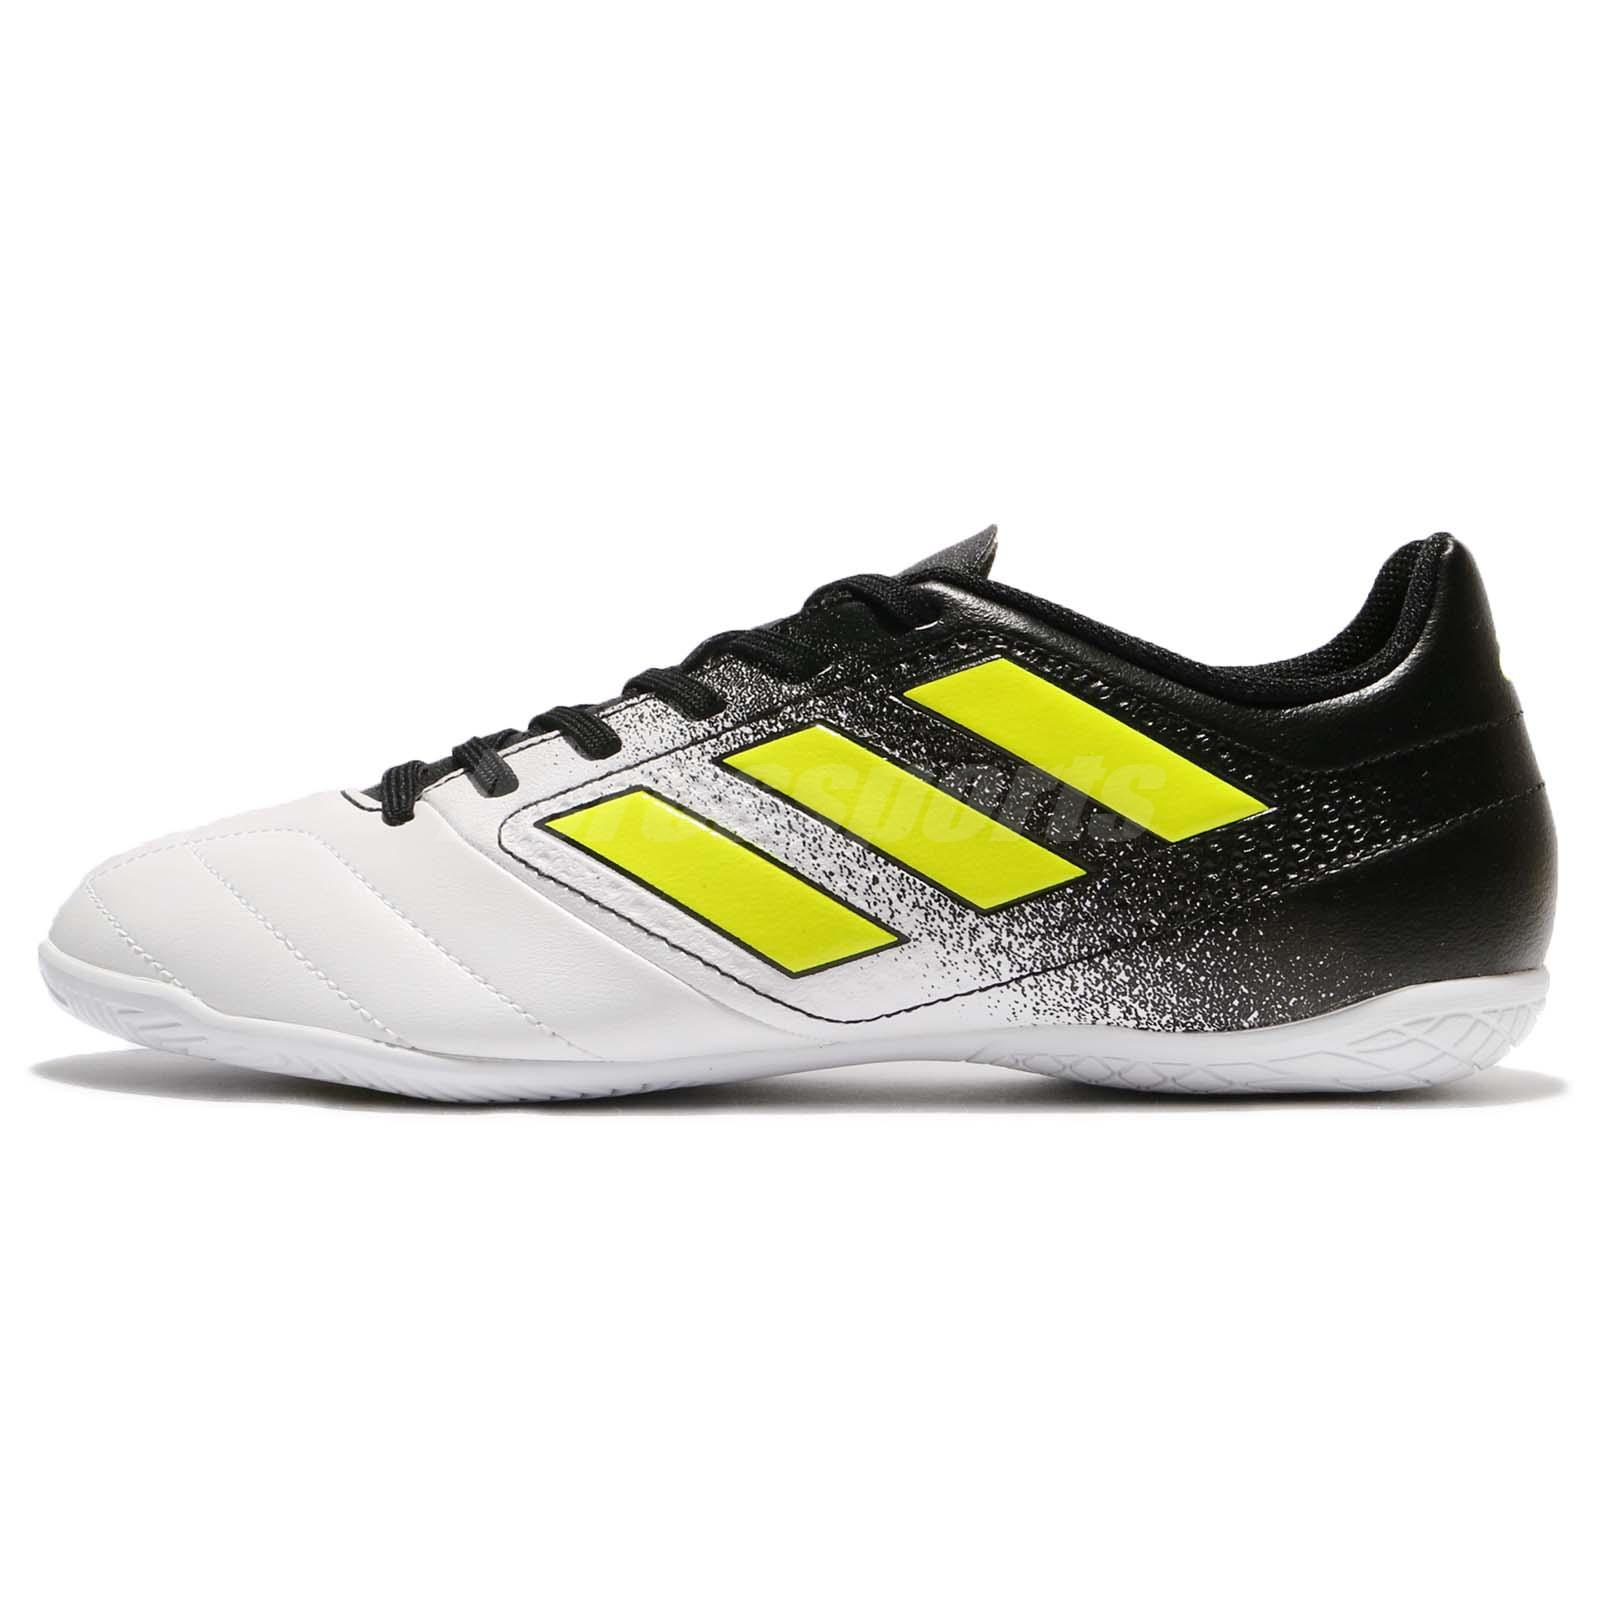 adidas Ace 17.4 In Indoor White Yellow Black Men Soccer Football Shoes  S77100